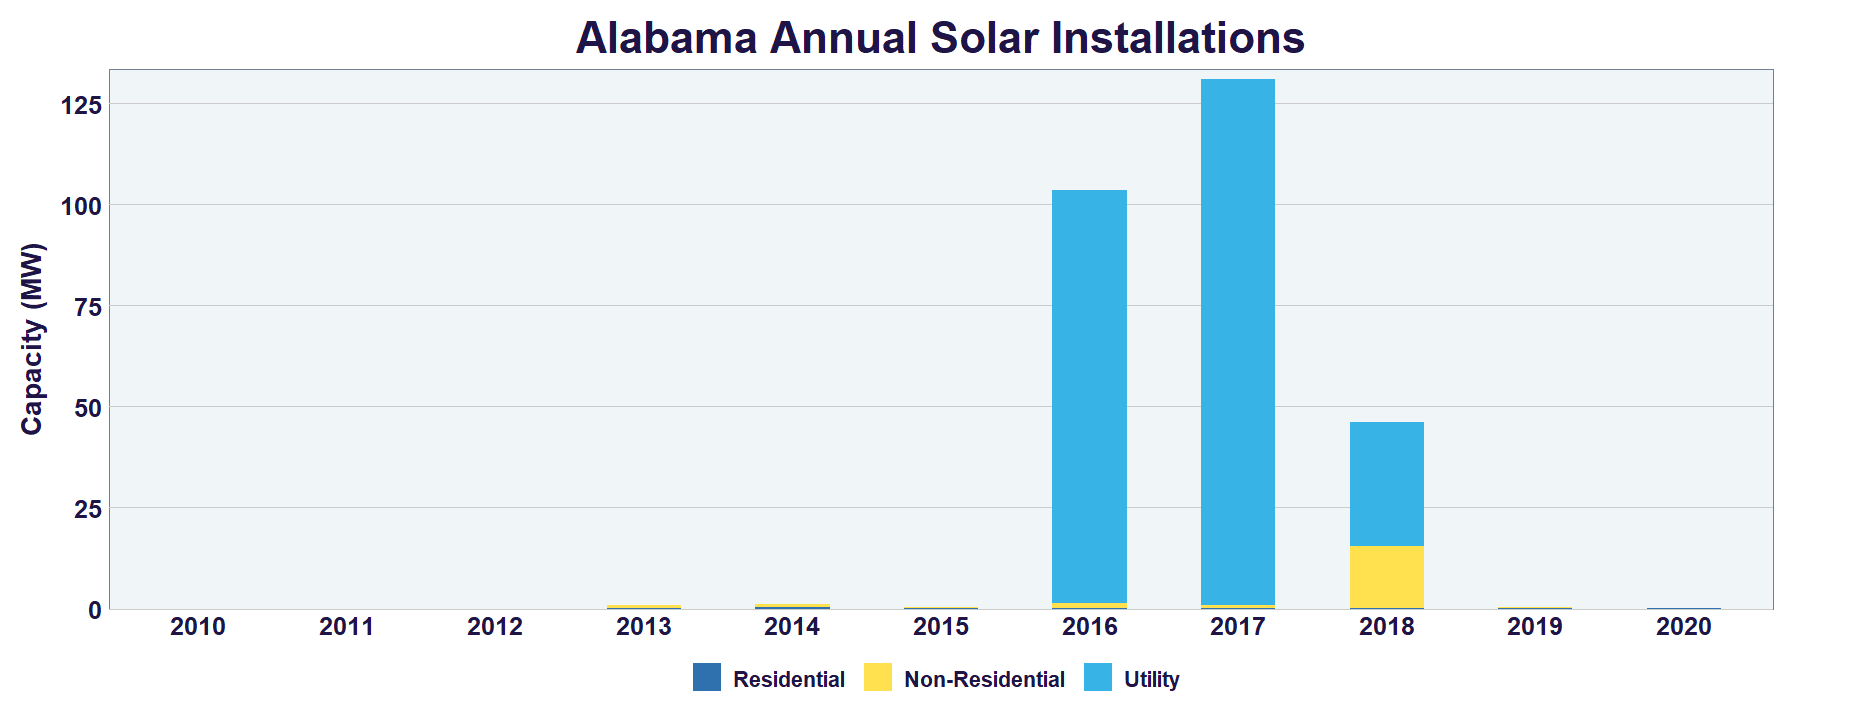 Alabama Installations